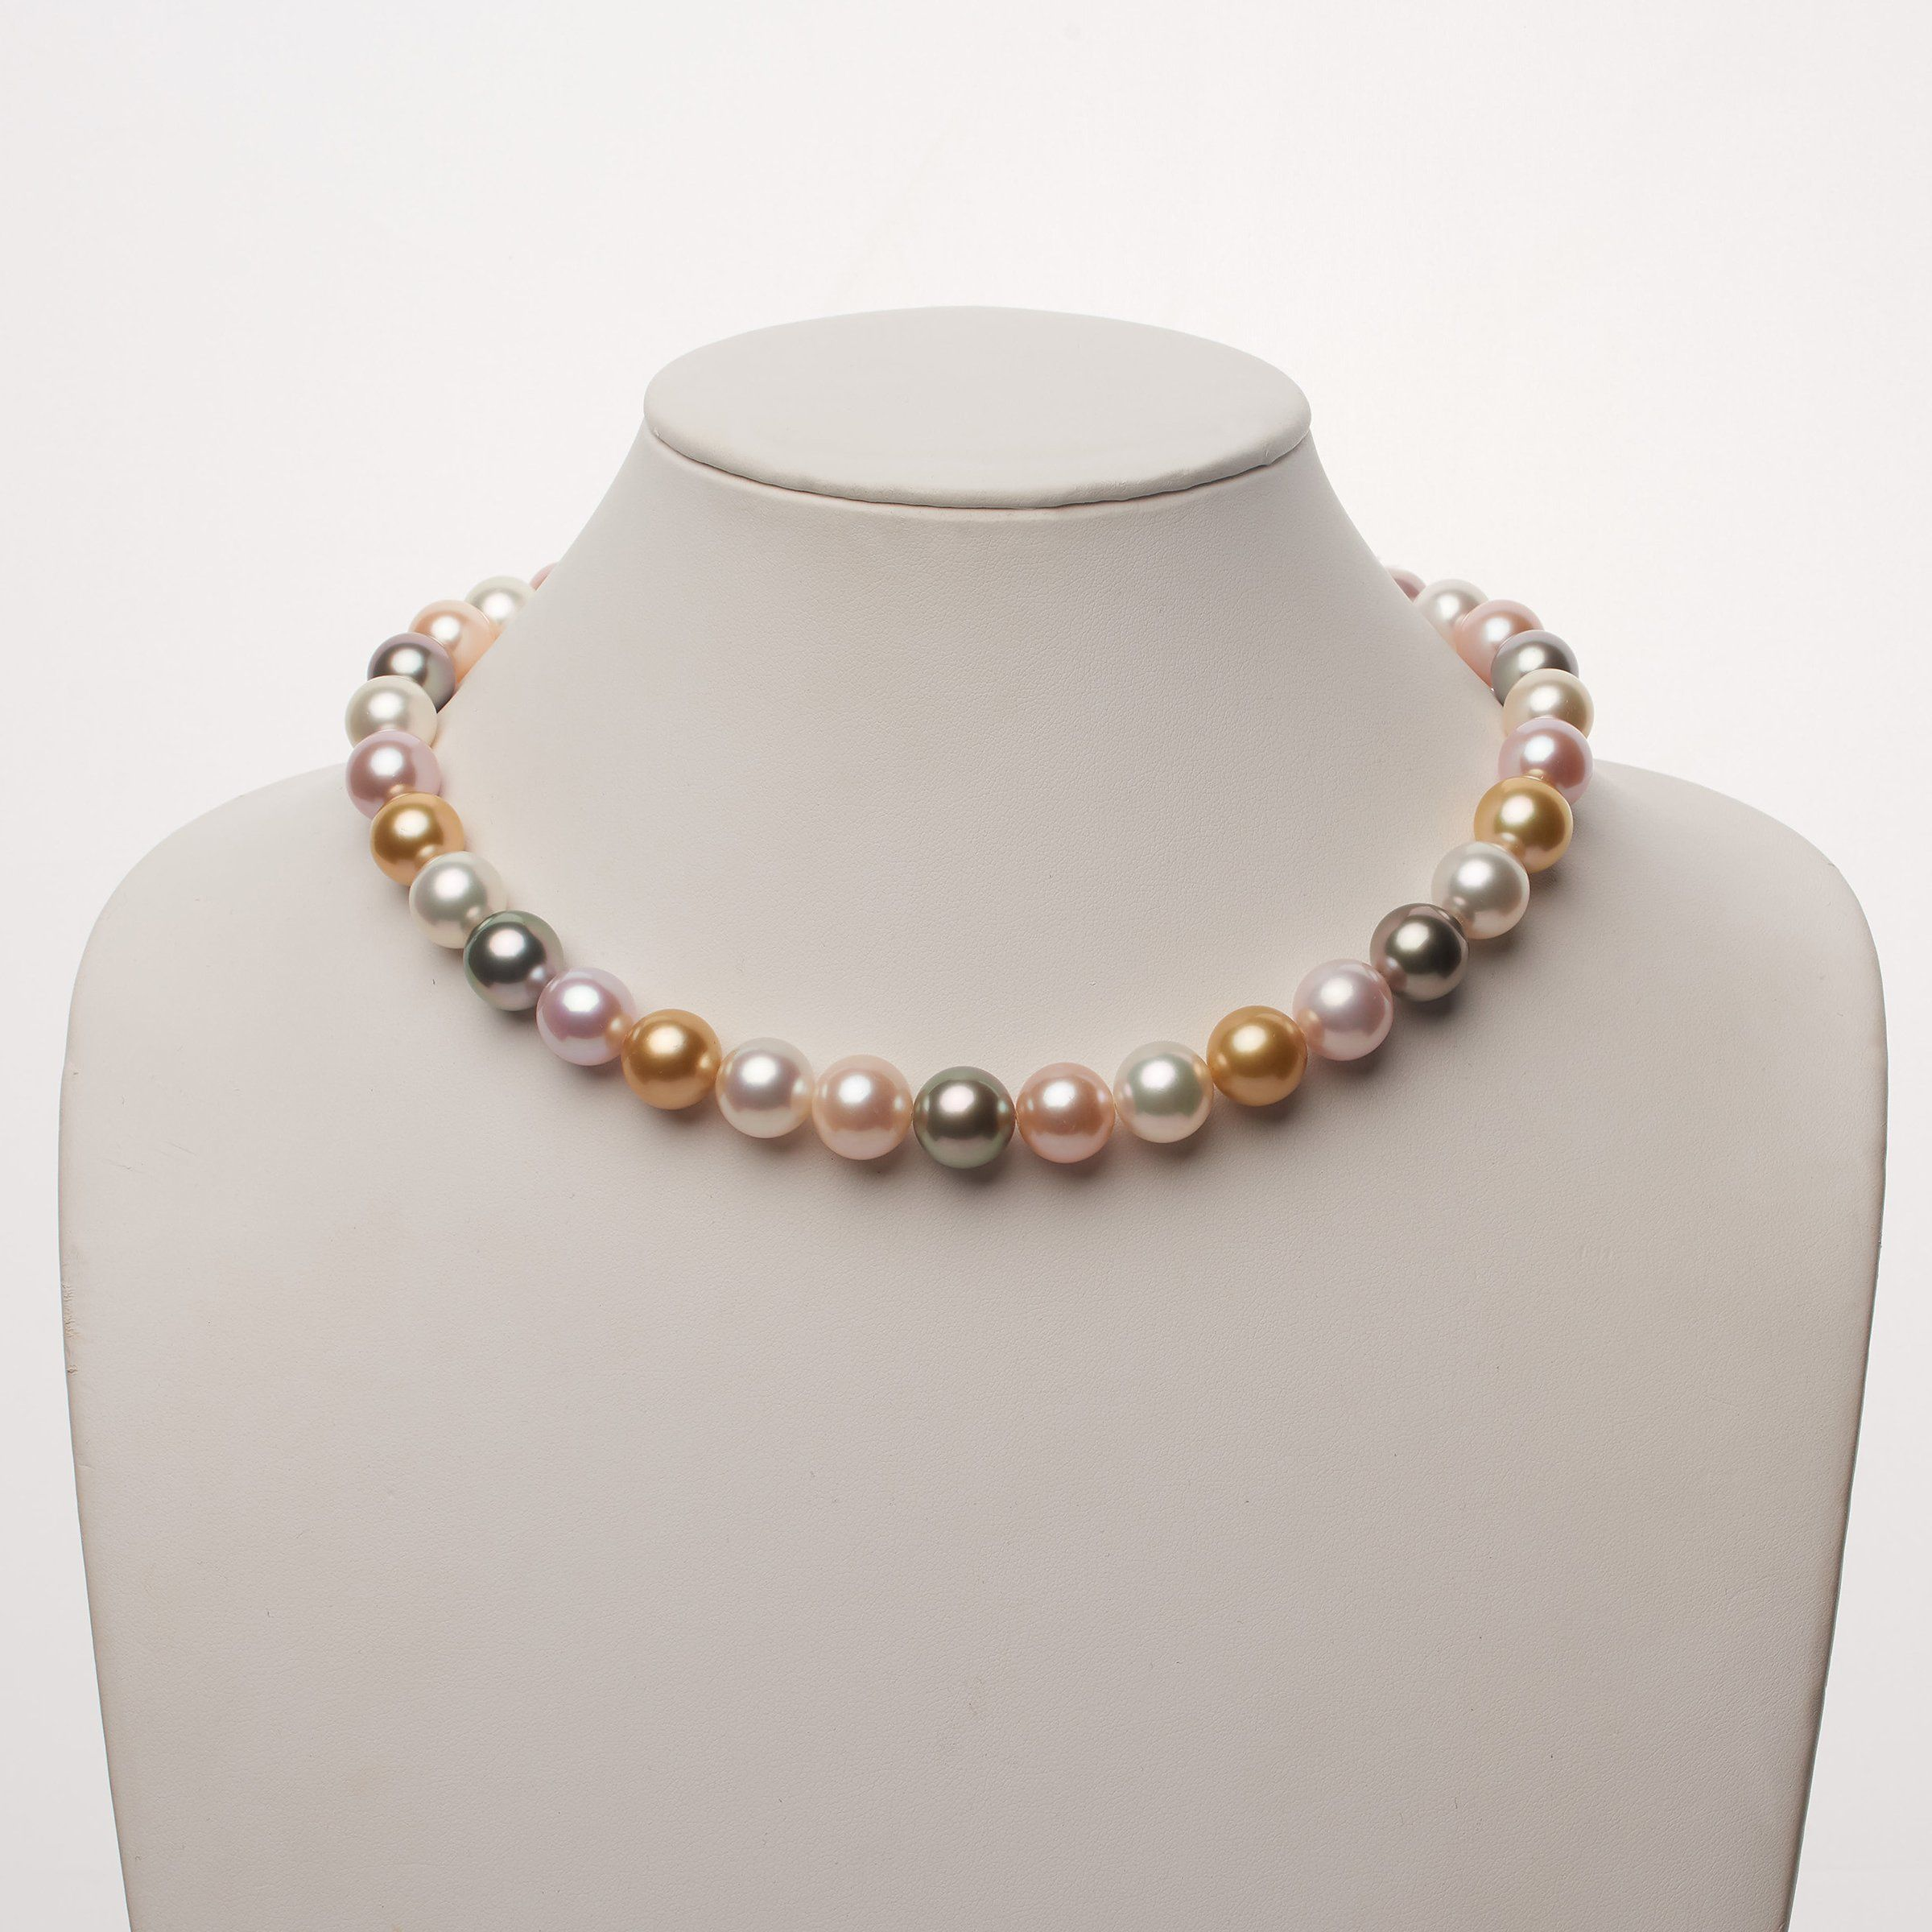 Endless Love Multicolored Pearl Necklace